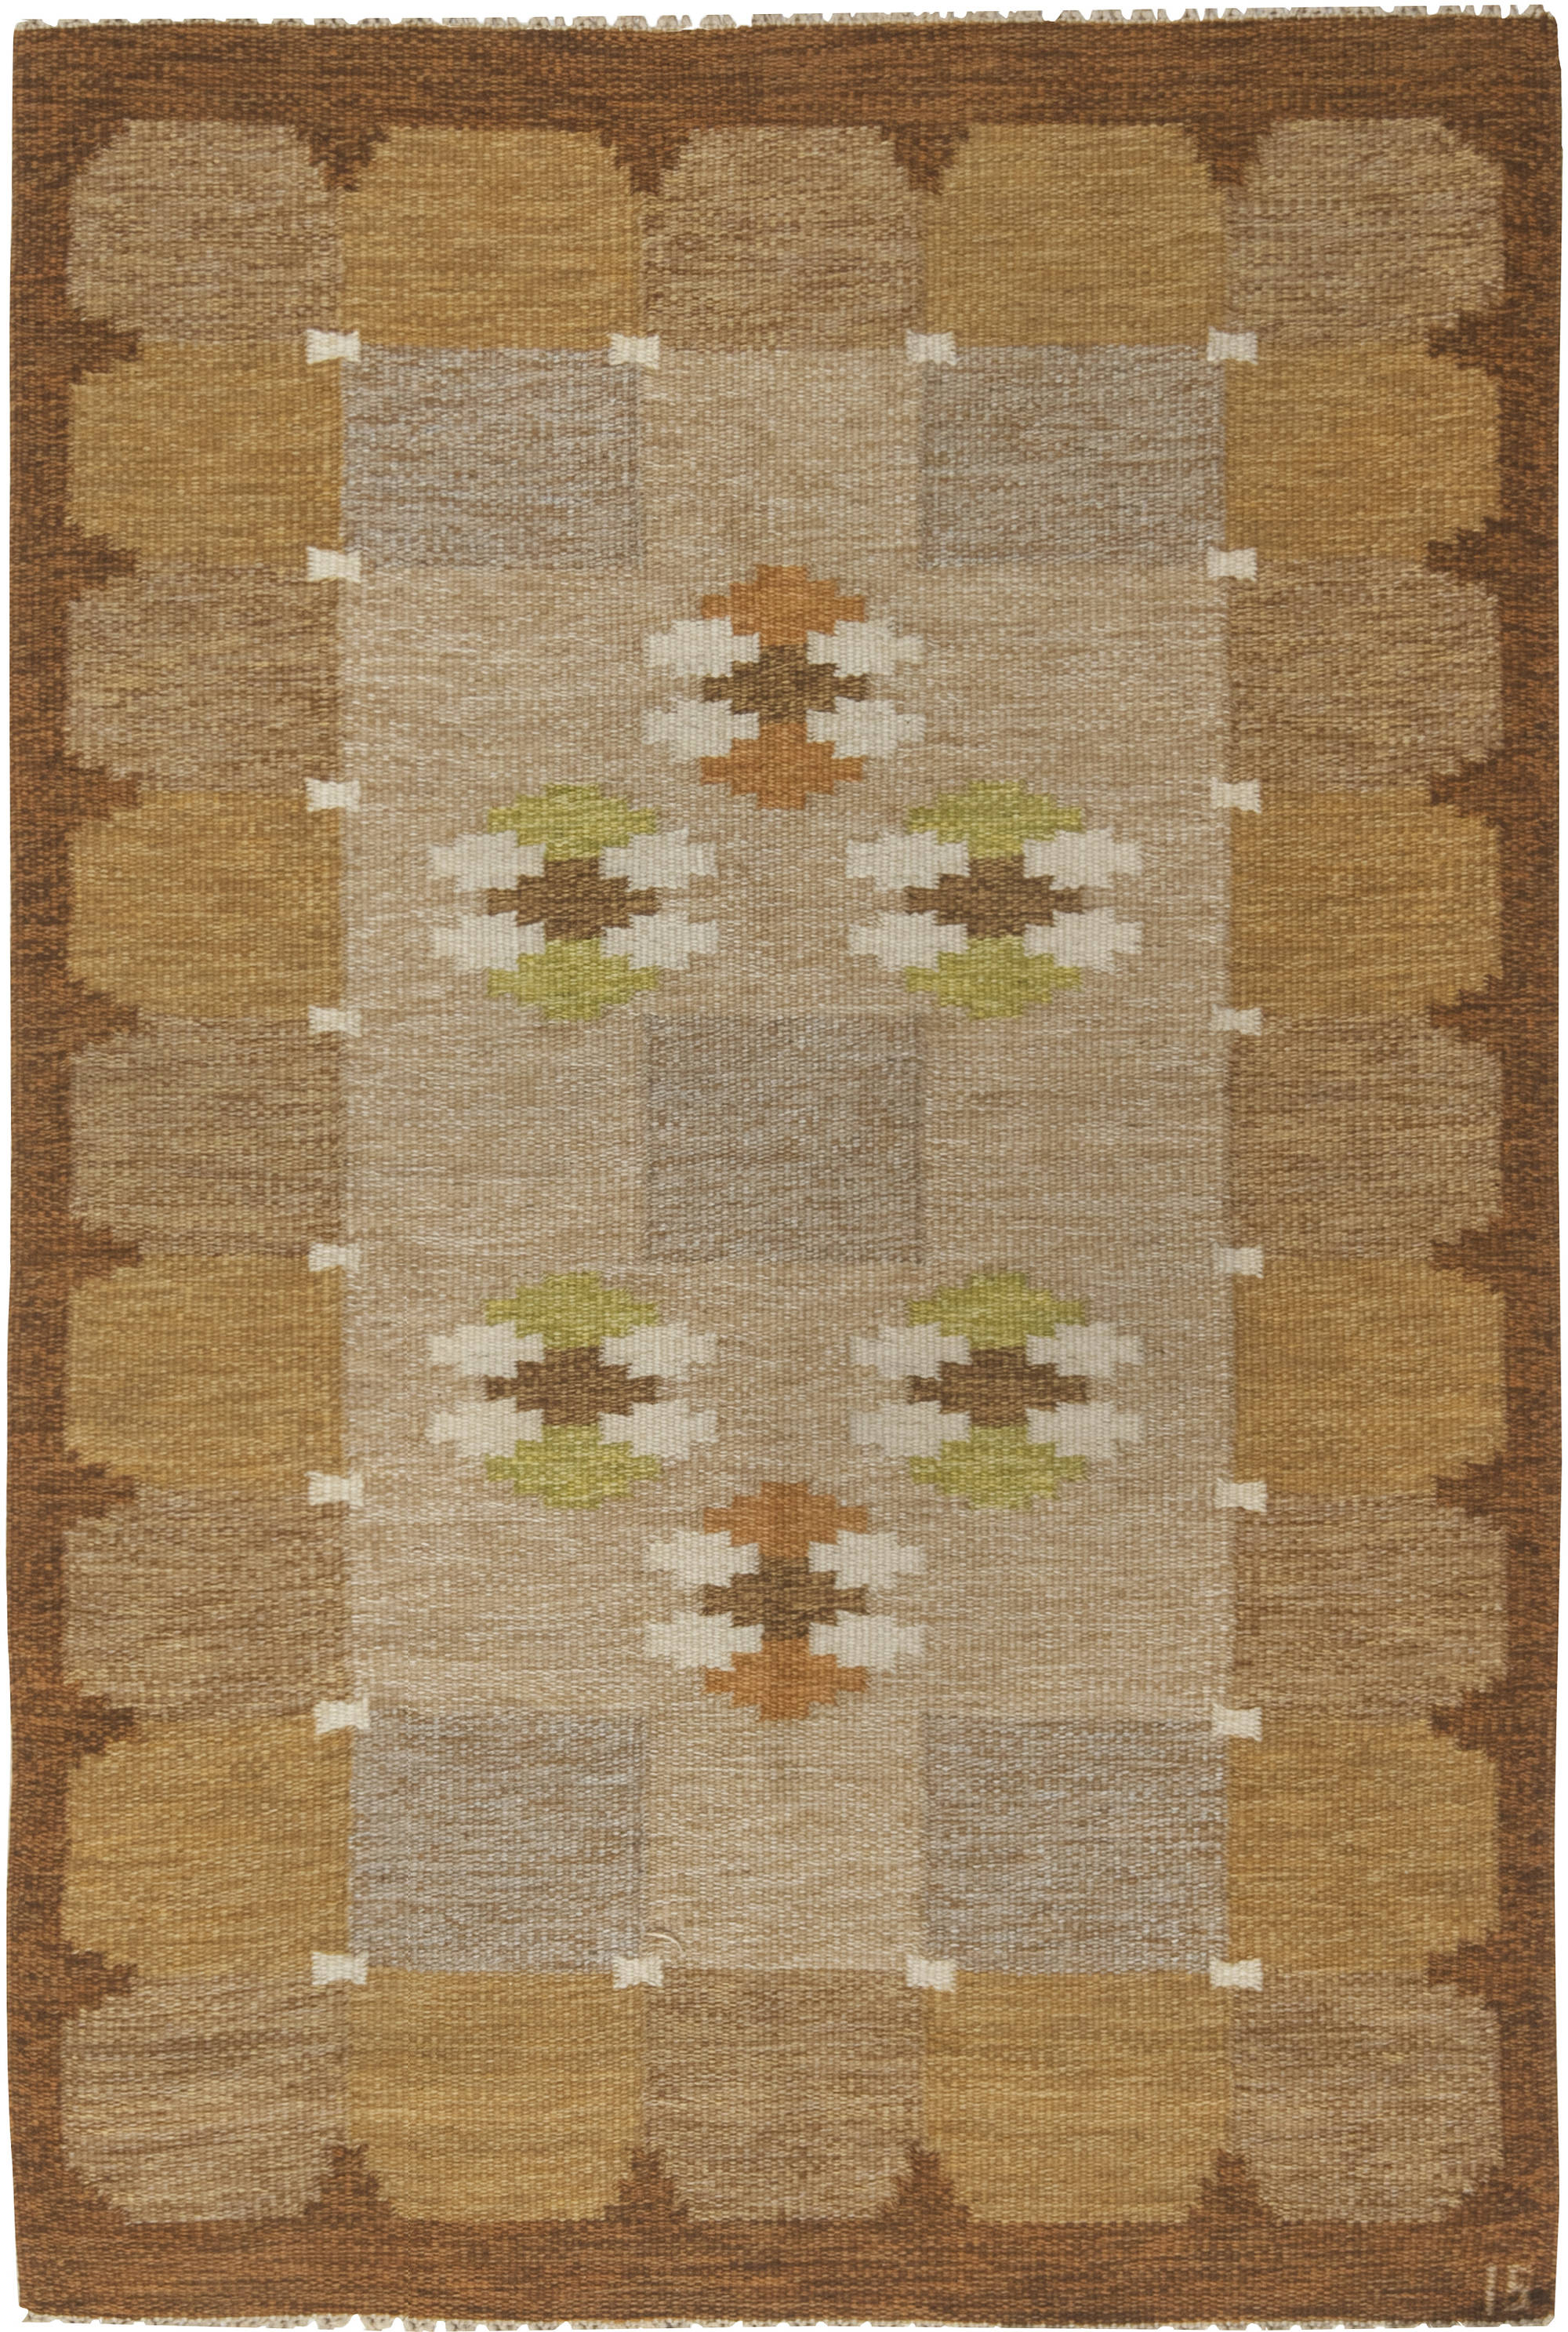 Vintage Swedish flat weave rug signed by Ingegerd Silow BB6553